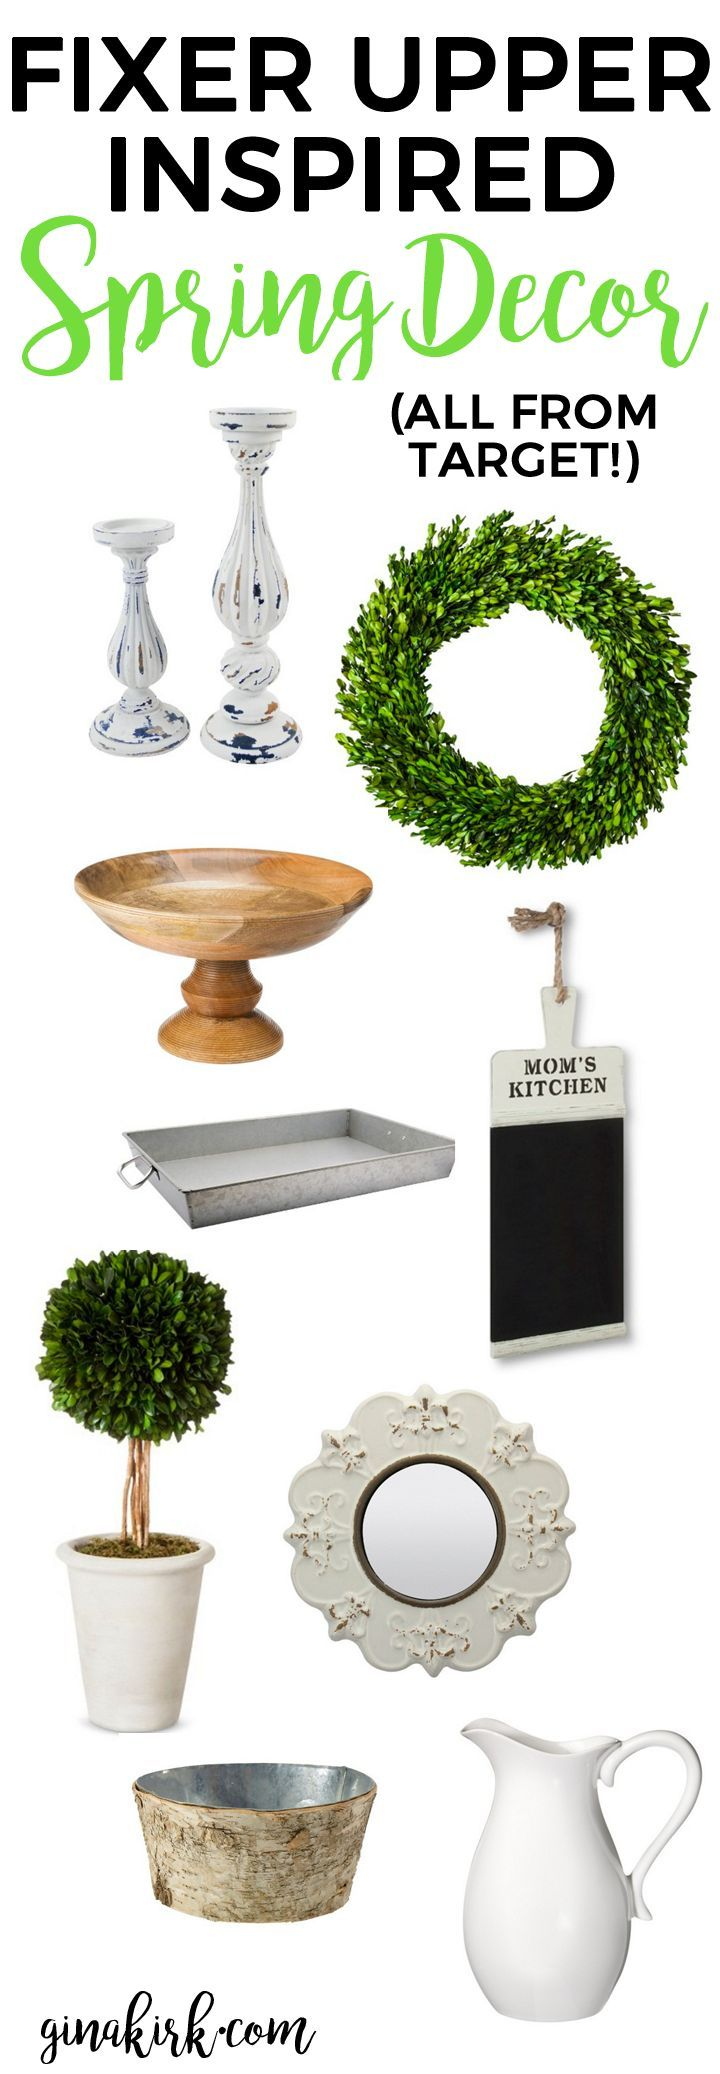 Fixer upper inspired spring decor | Home decor from Target | Fixer upper design finds at Target | GinaKirk.com